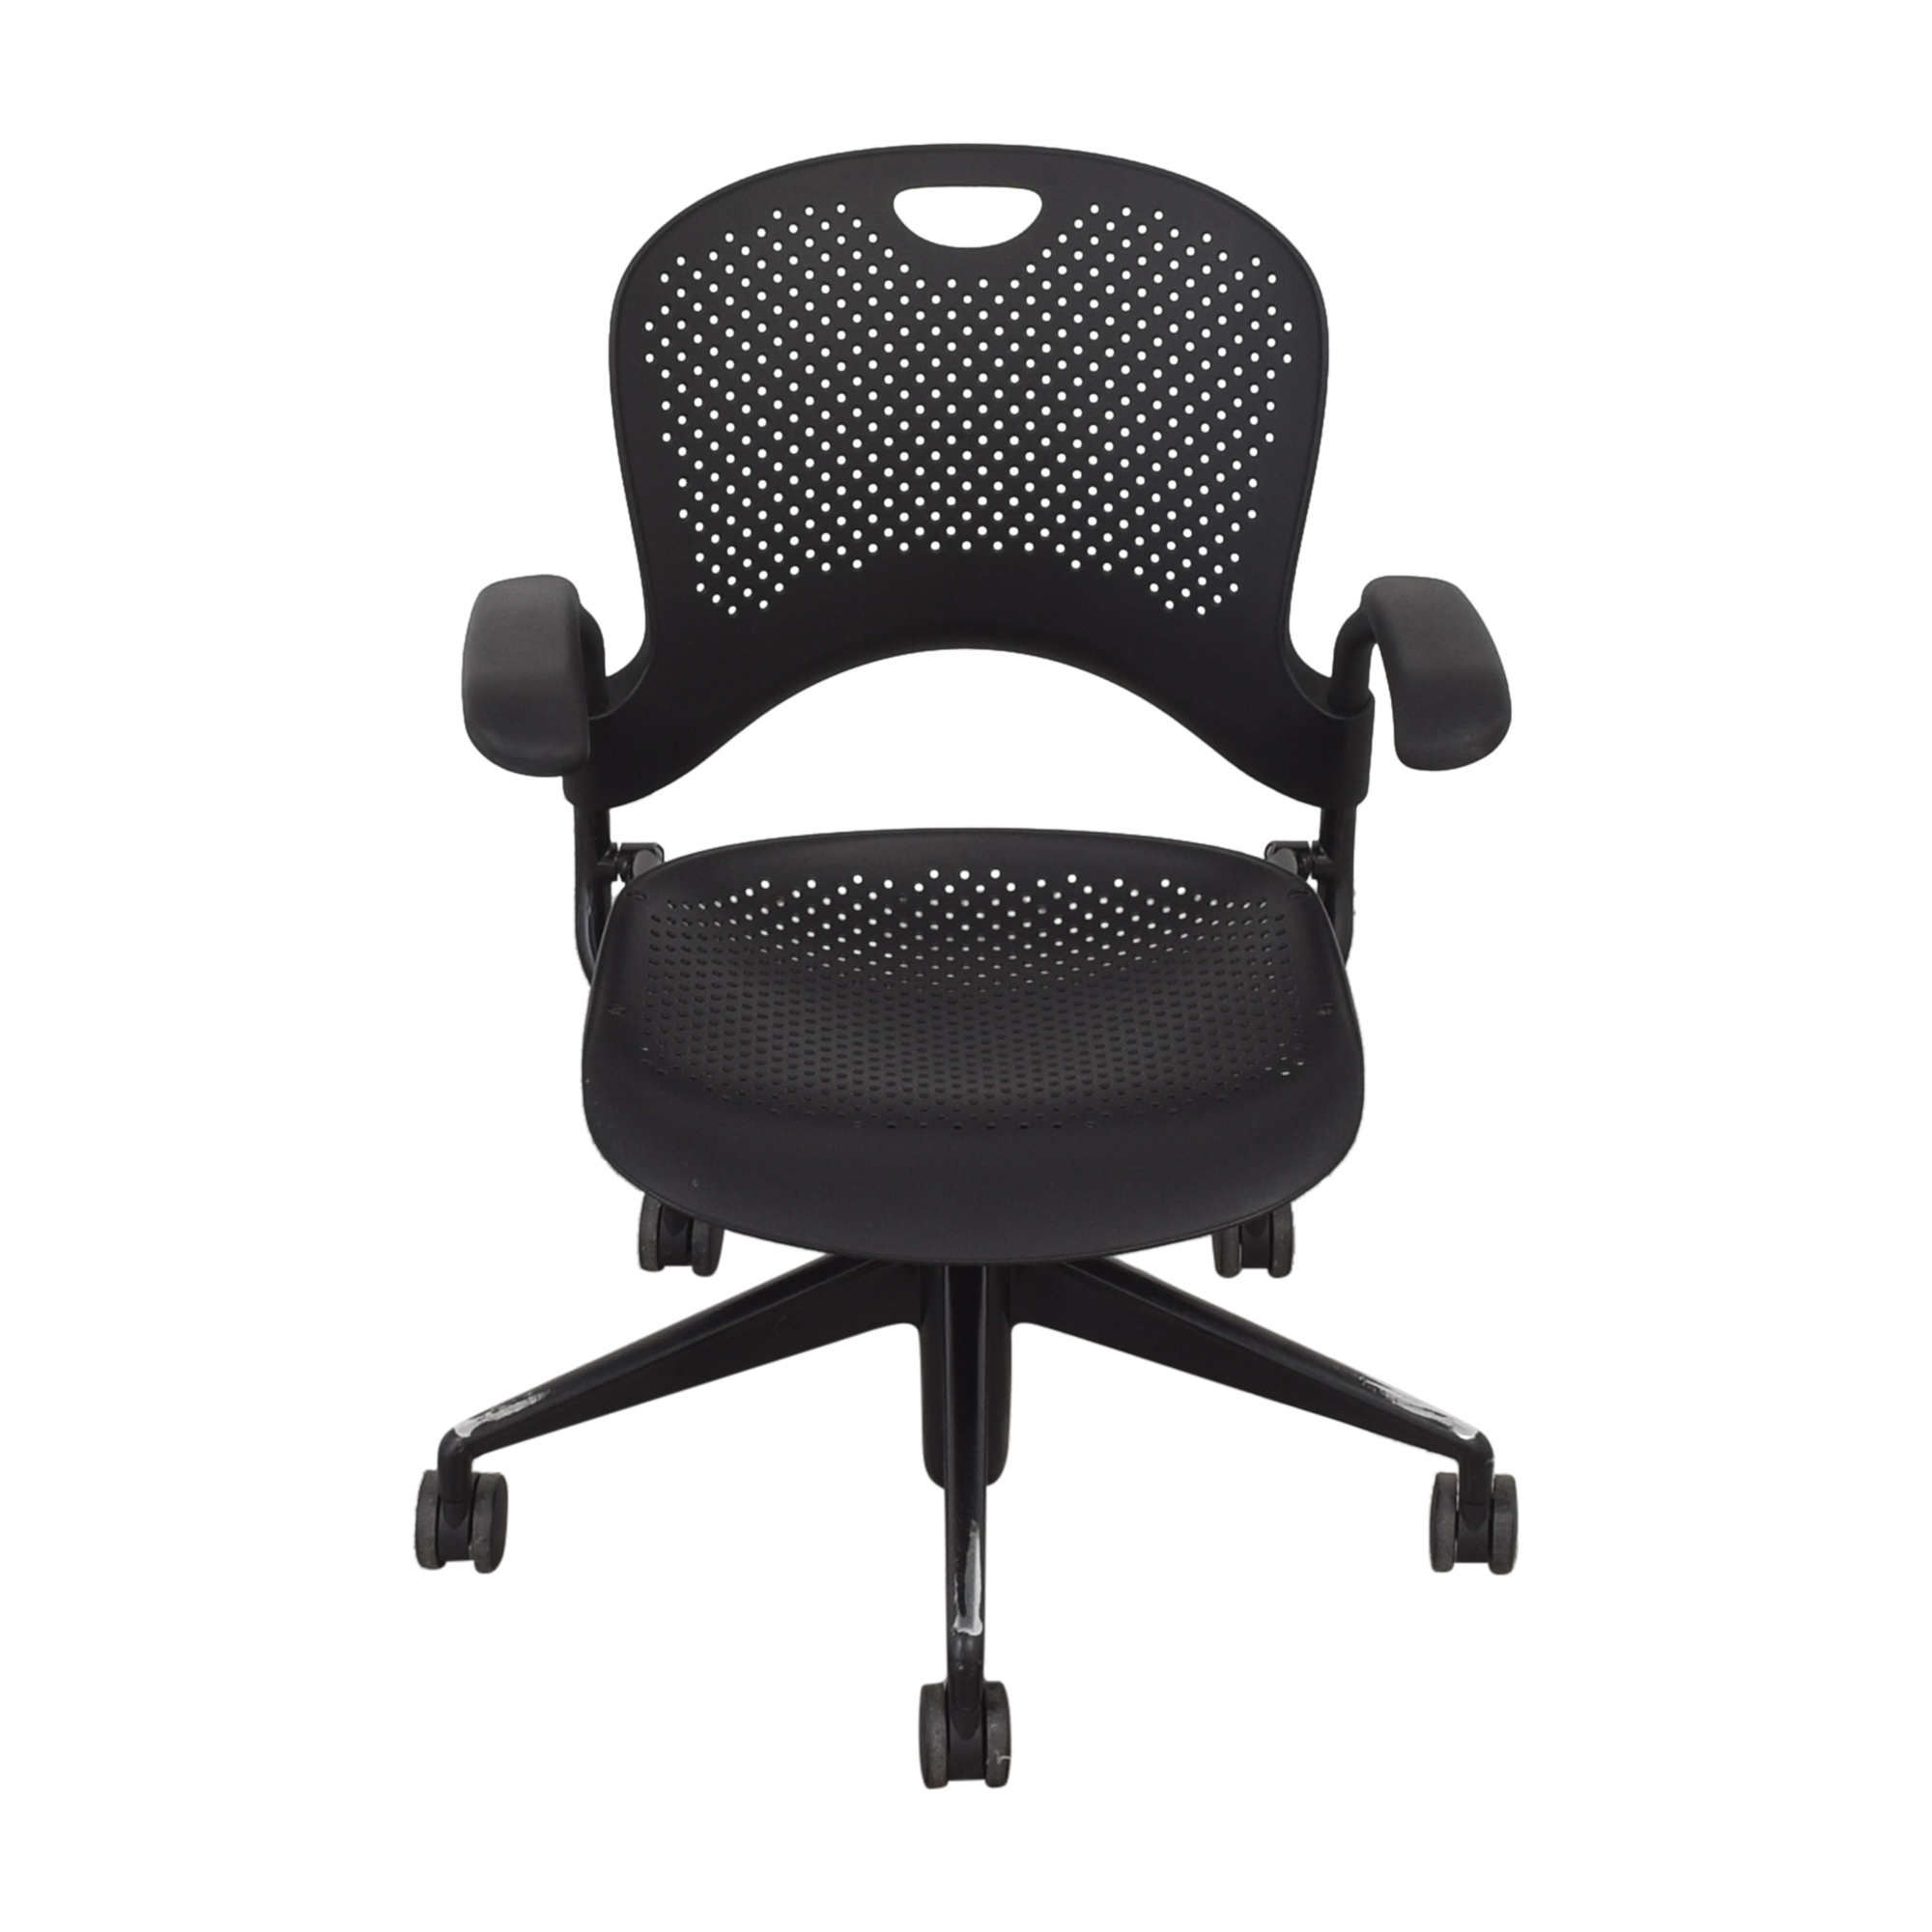 Herman Miller Herman Miller Caper Multipurpose Chair black